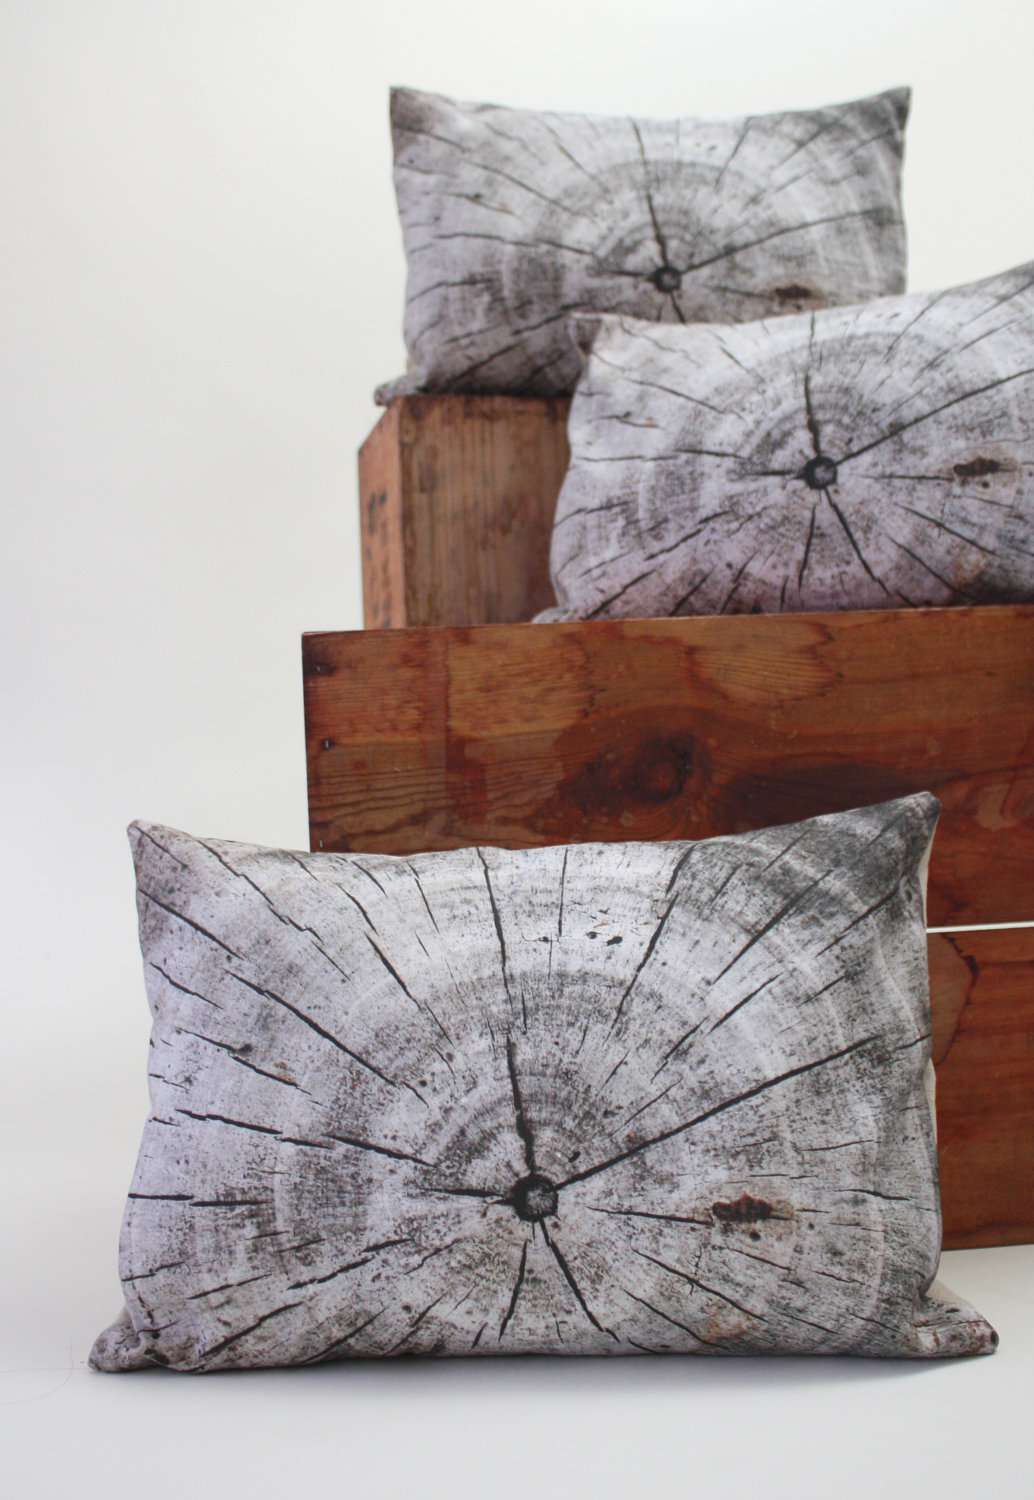 Decorative driftwood pillow by Plantillo